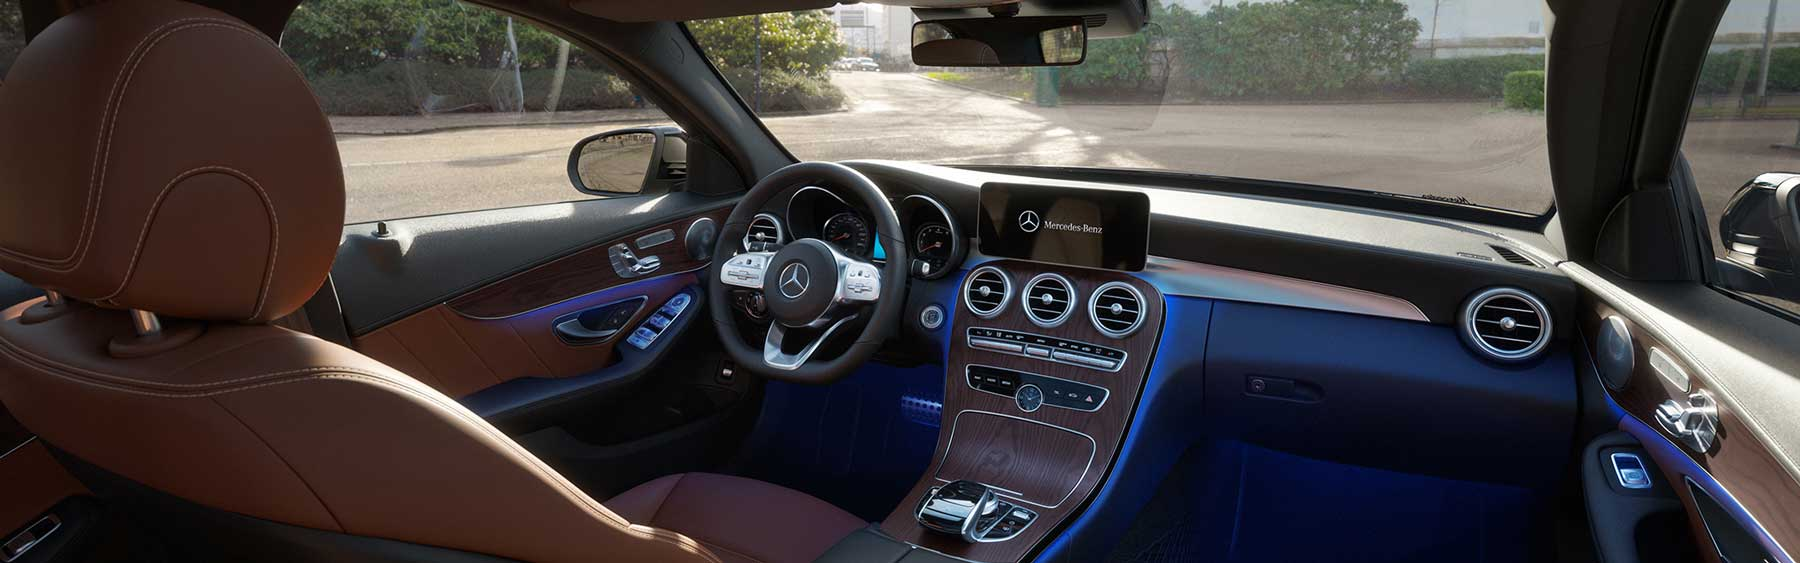 The 2019 C-Class Sedan